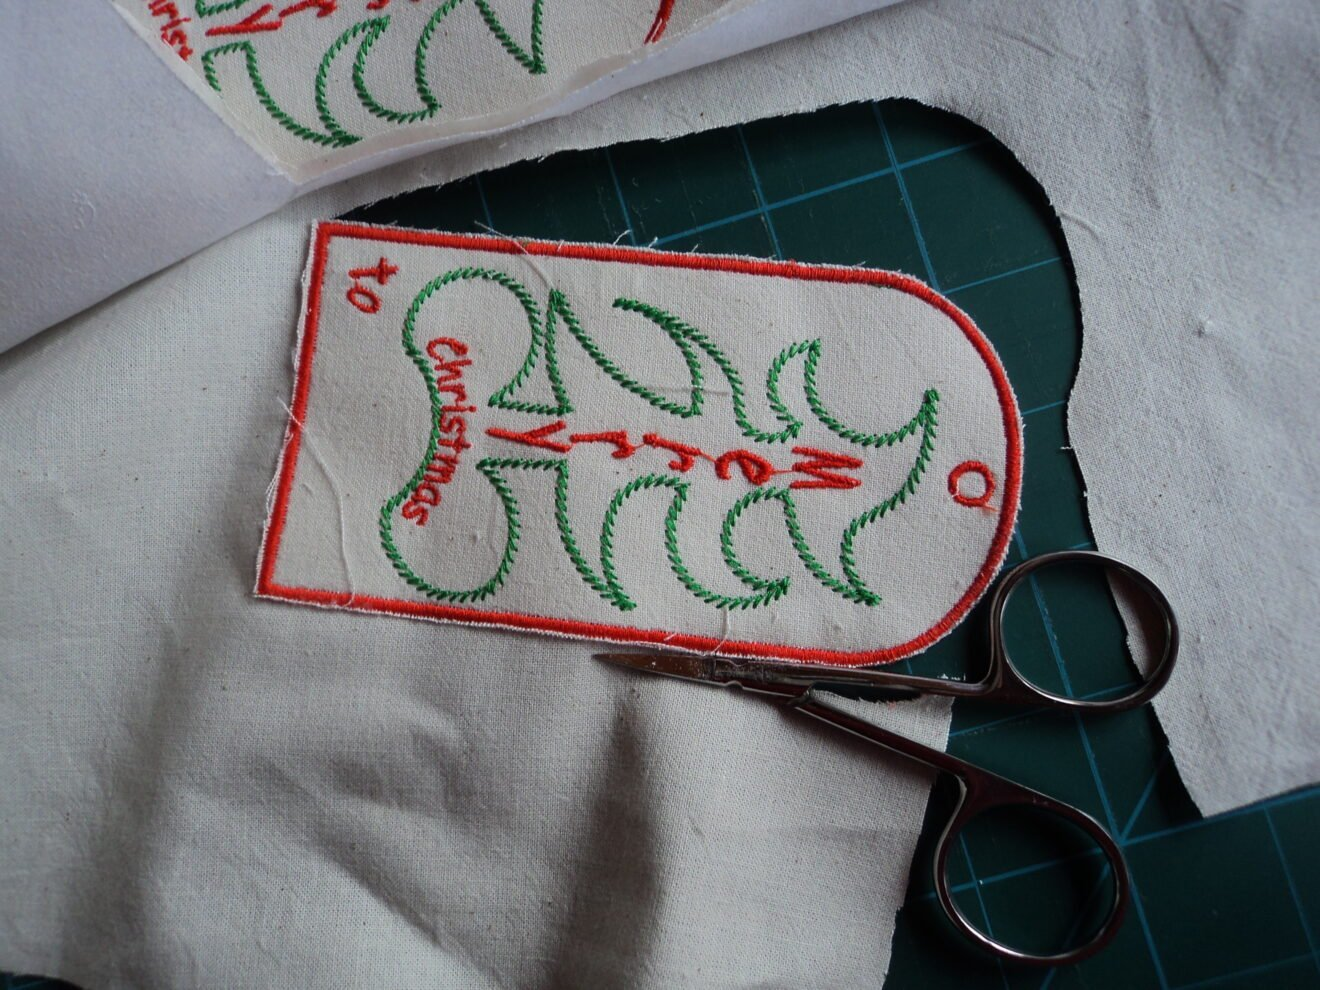 Easy instructions for making embroidered Merry Christmas tree labels (with free embroidery template)